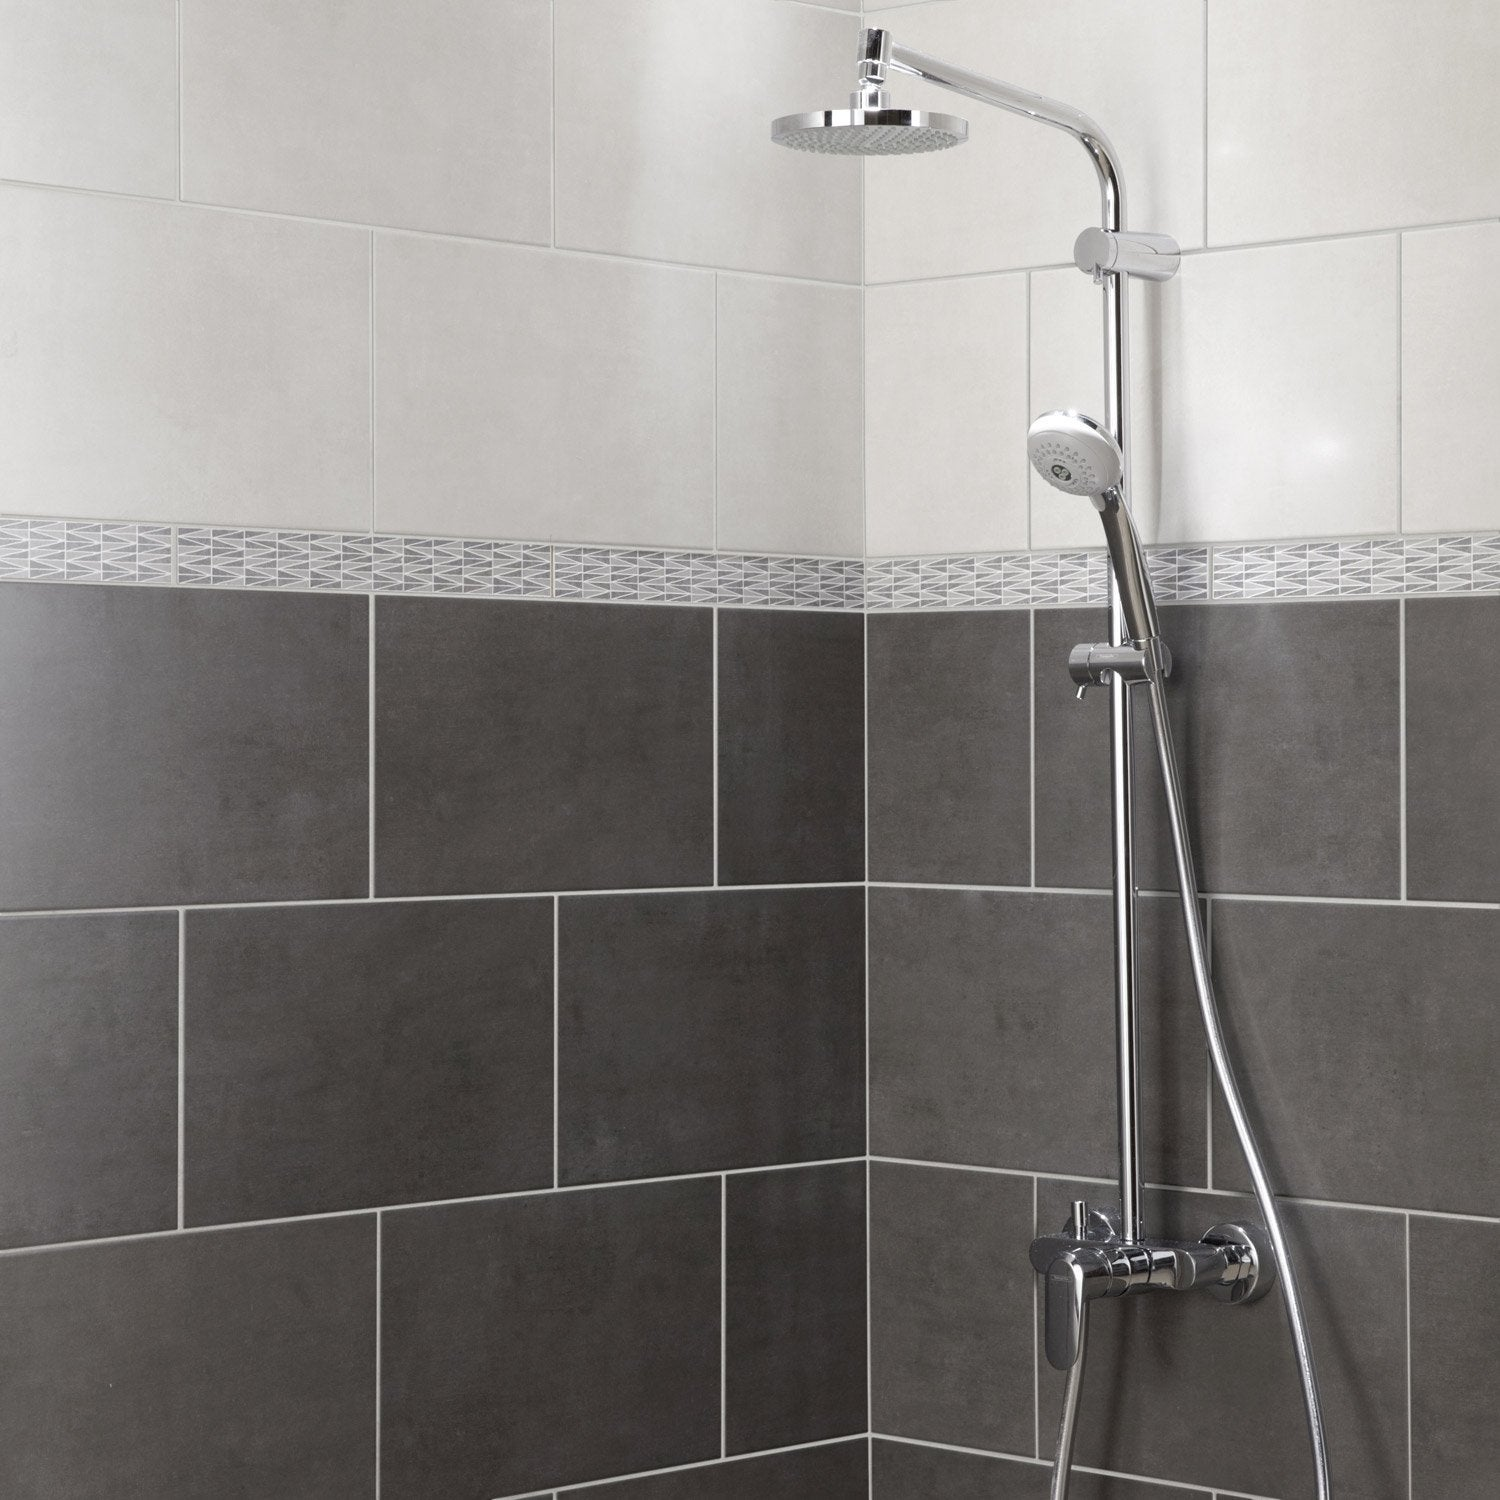 Fa ence mur anthracite smart x cm leroy merlin for Salle de bain faience blanche